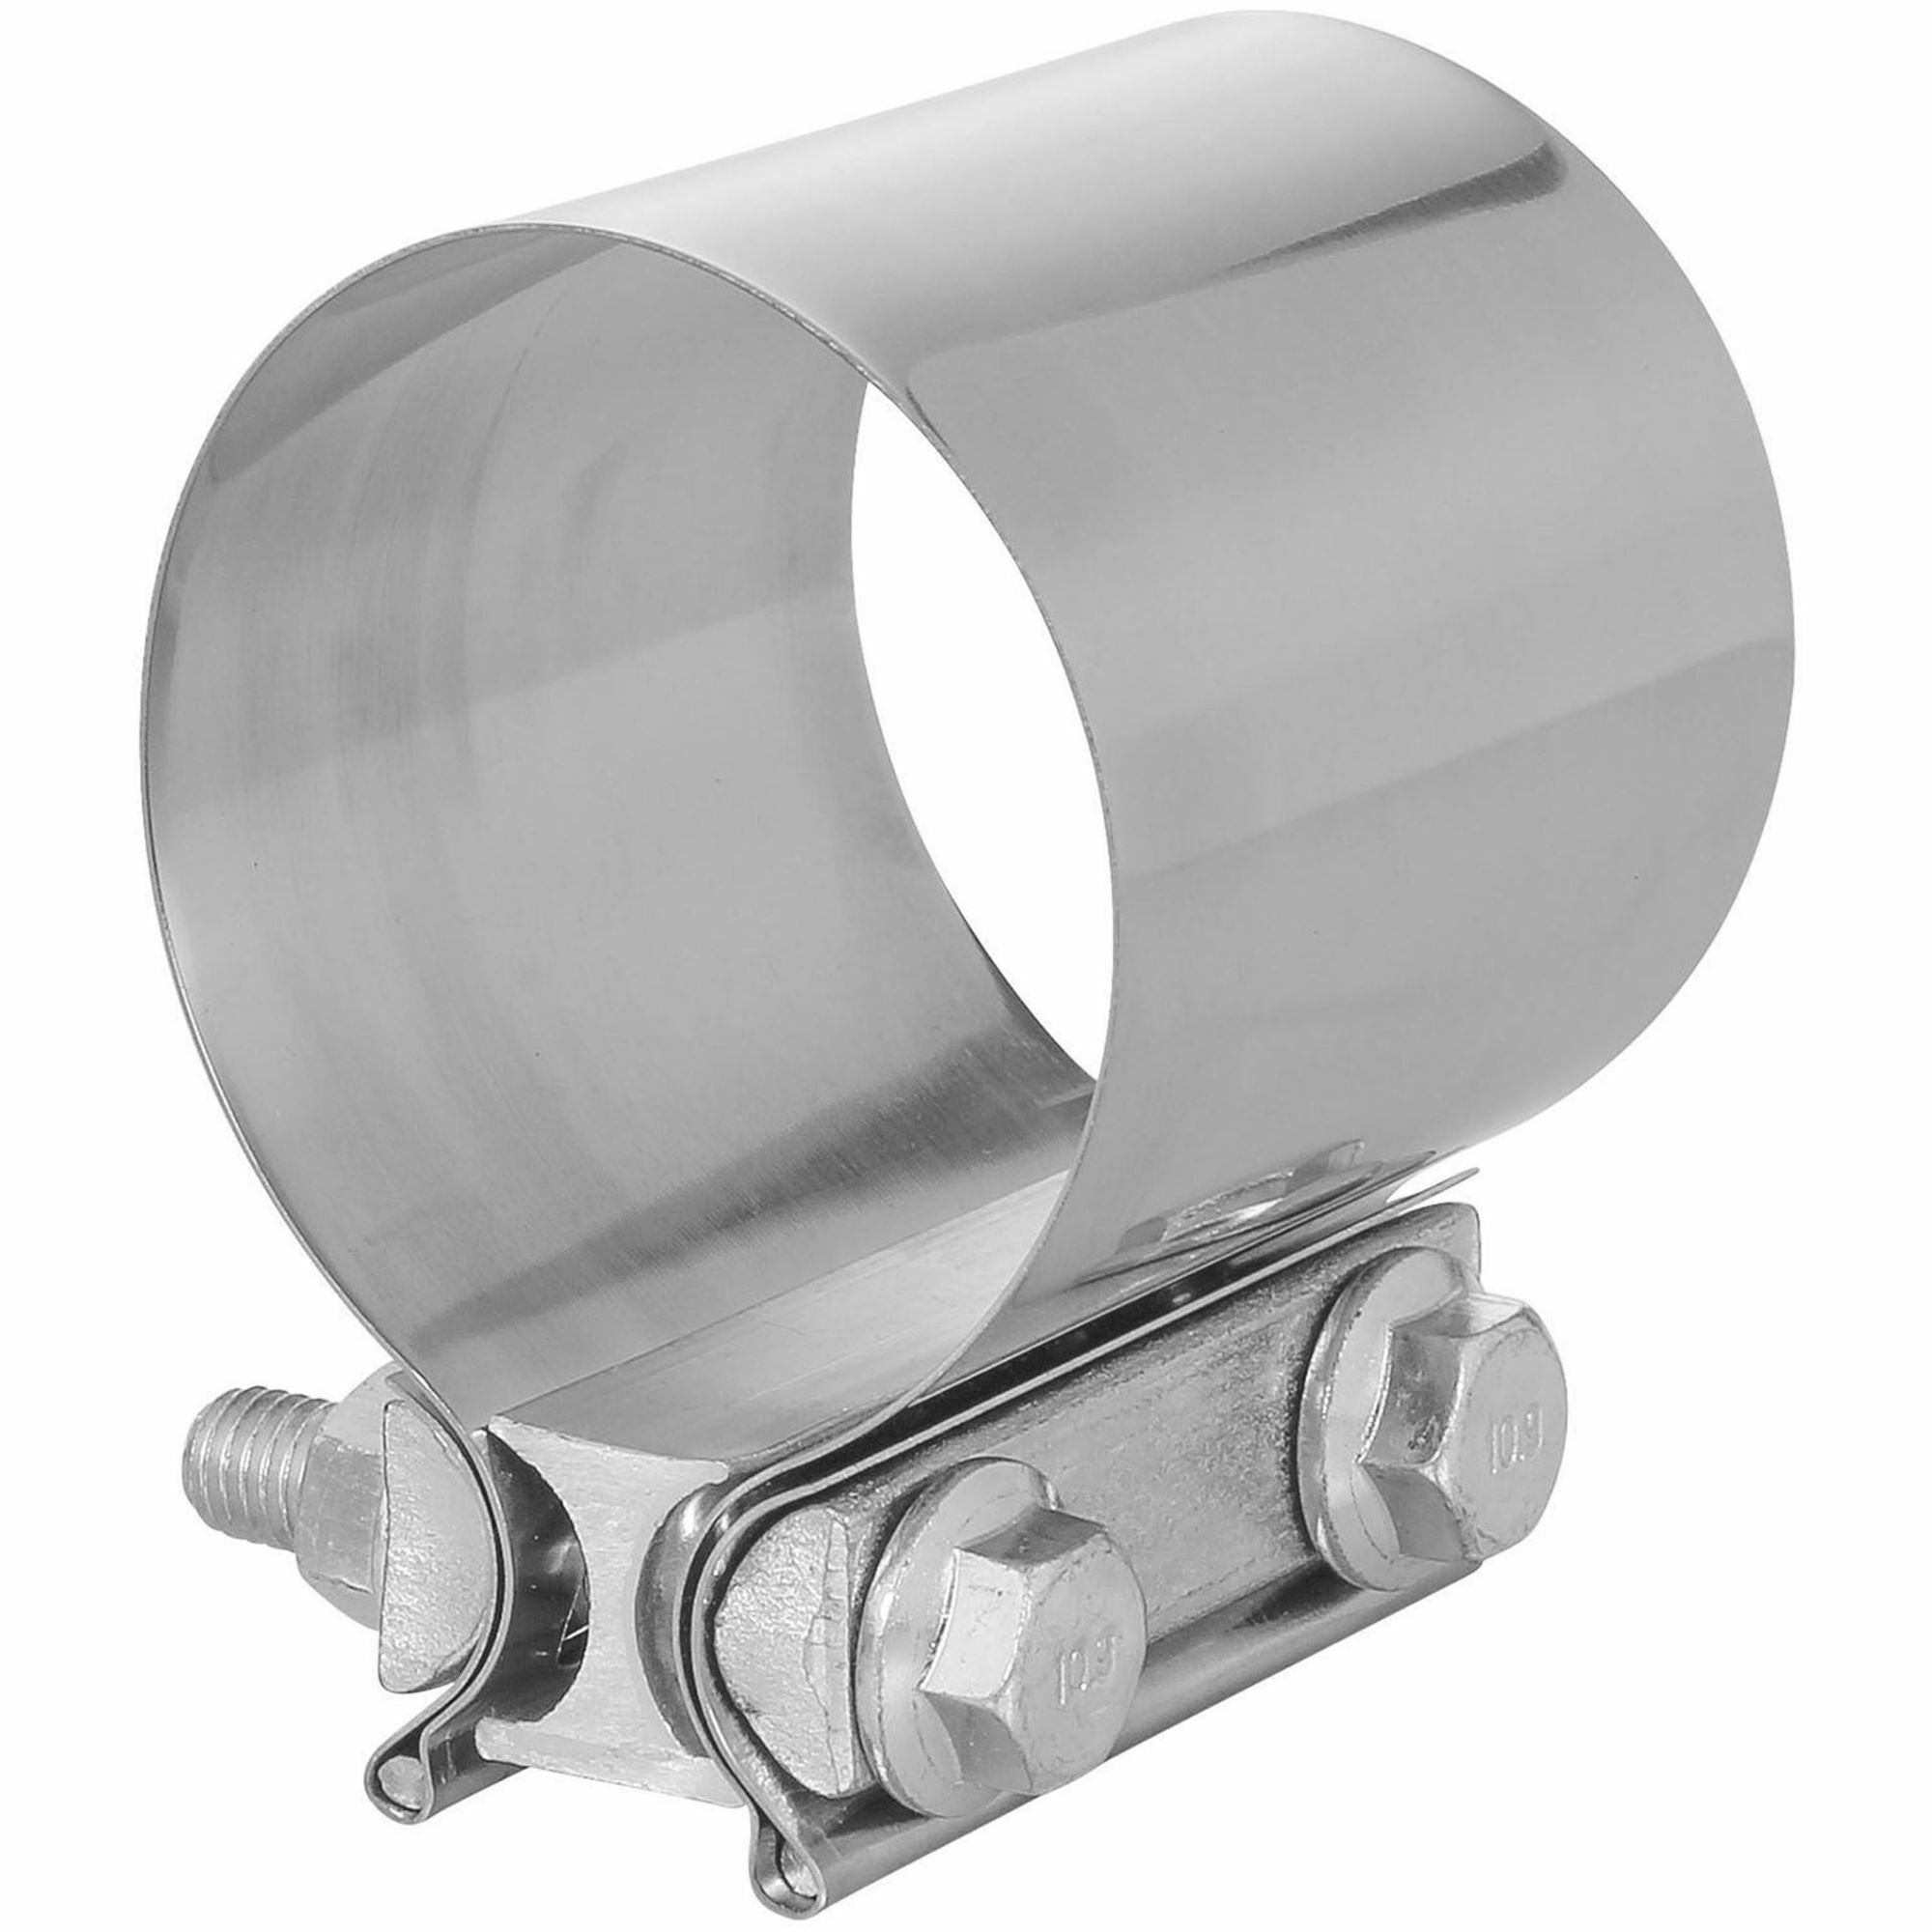 totalflow tf jb64 butt joint exhaust muffler clamp band 5 inch